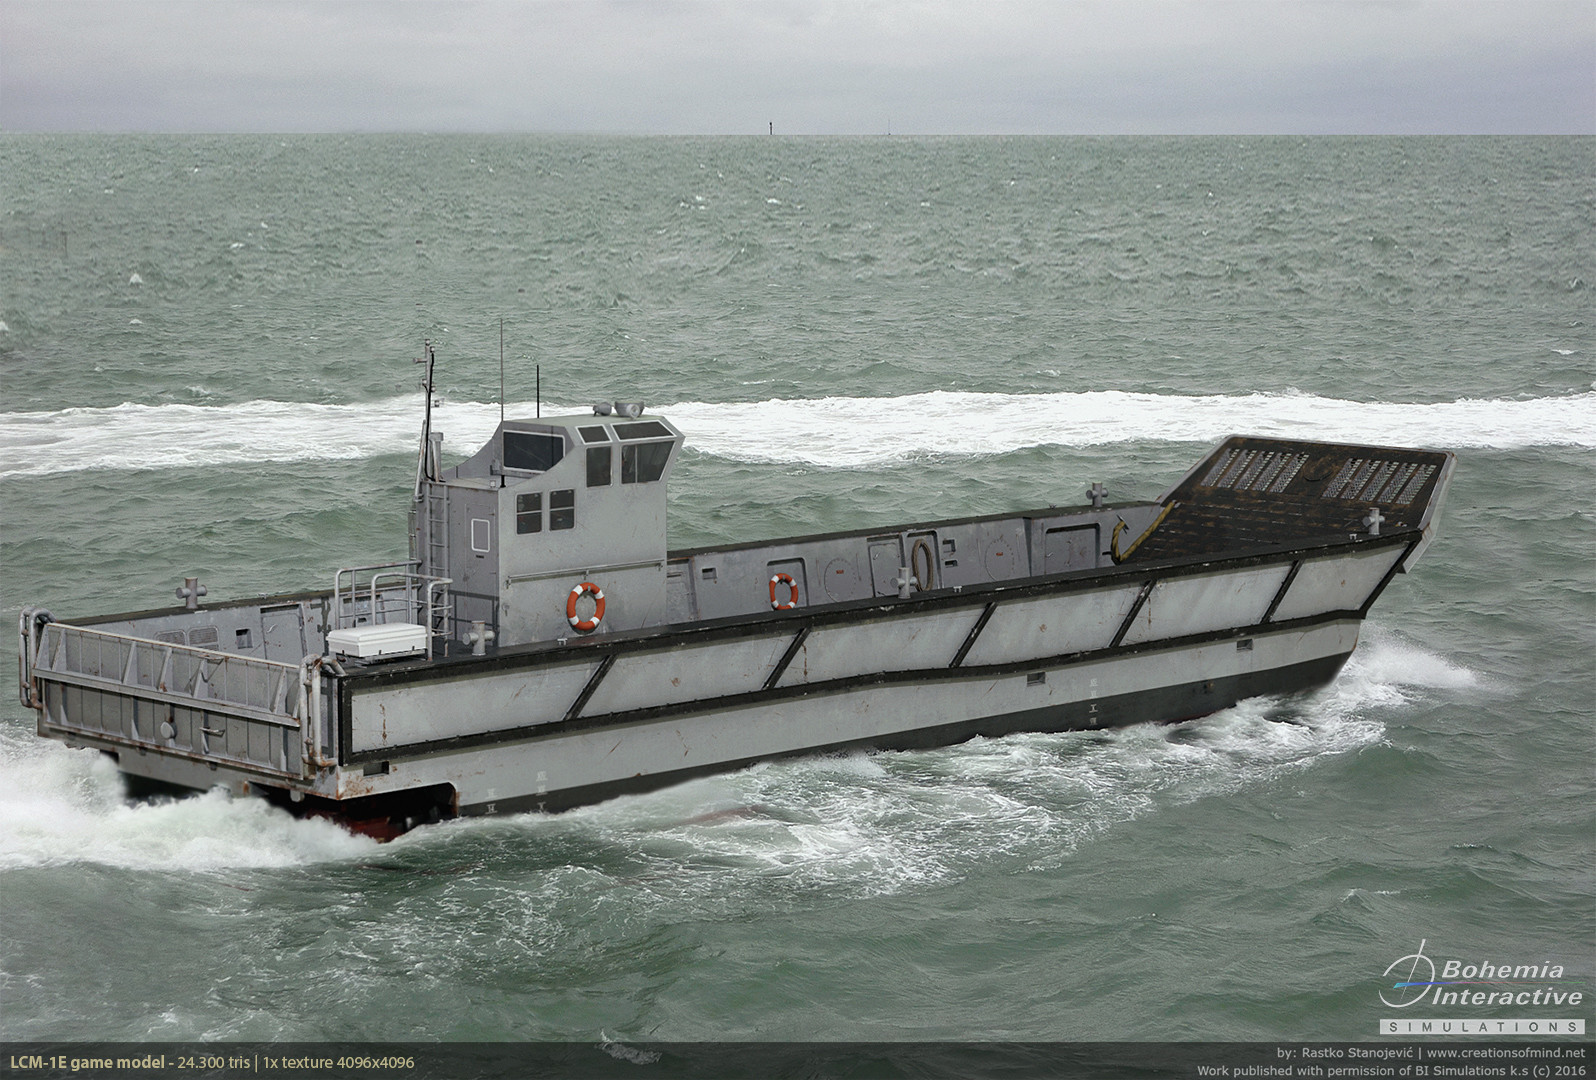 LCM-1e Landing Craft | Game model (real time render) composed into real life photo |